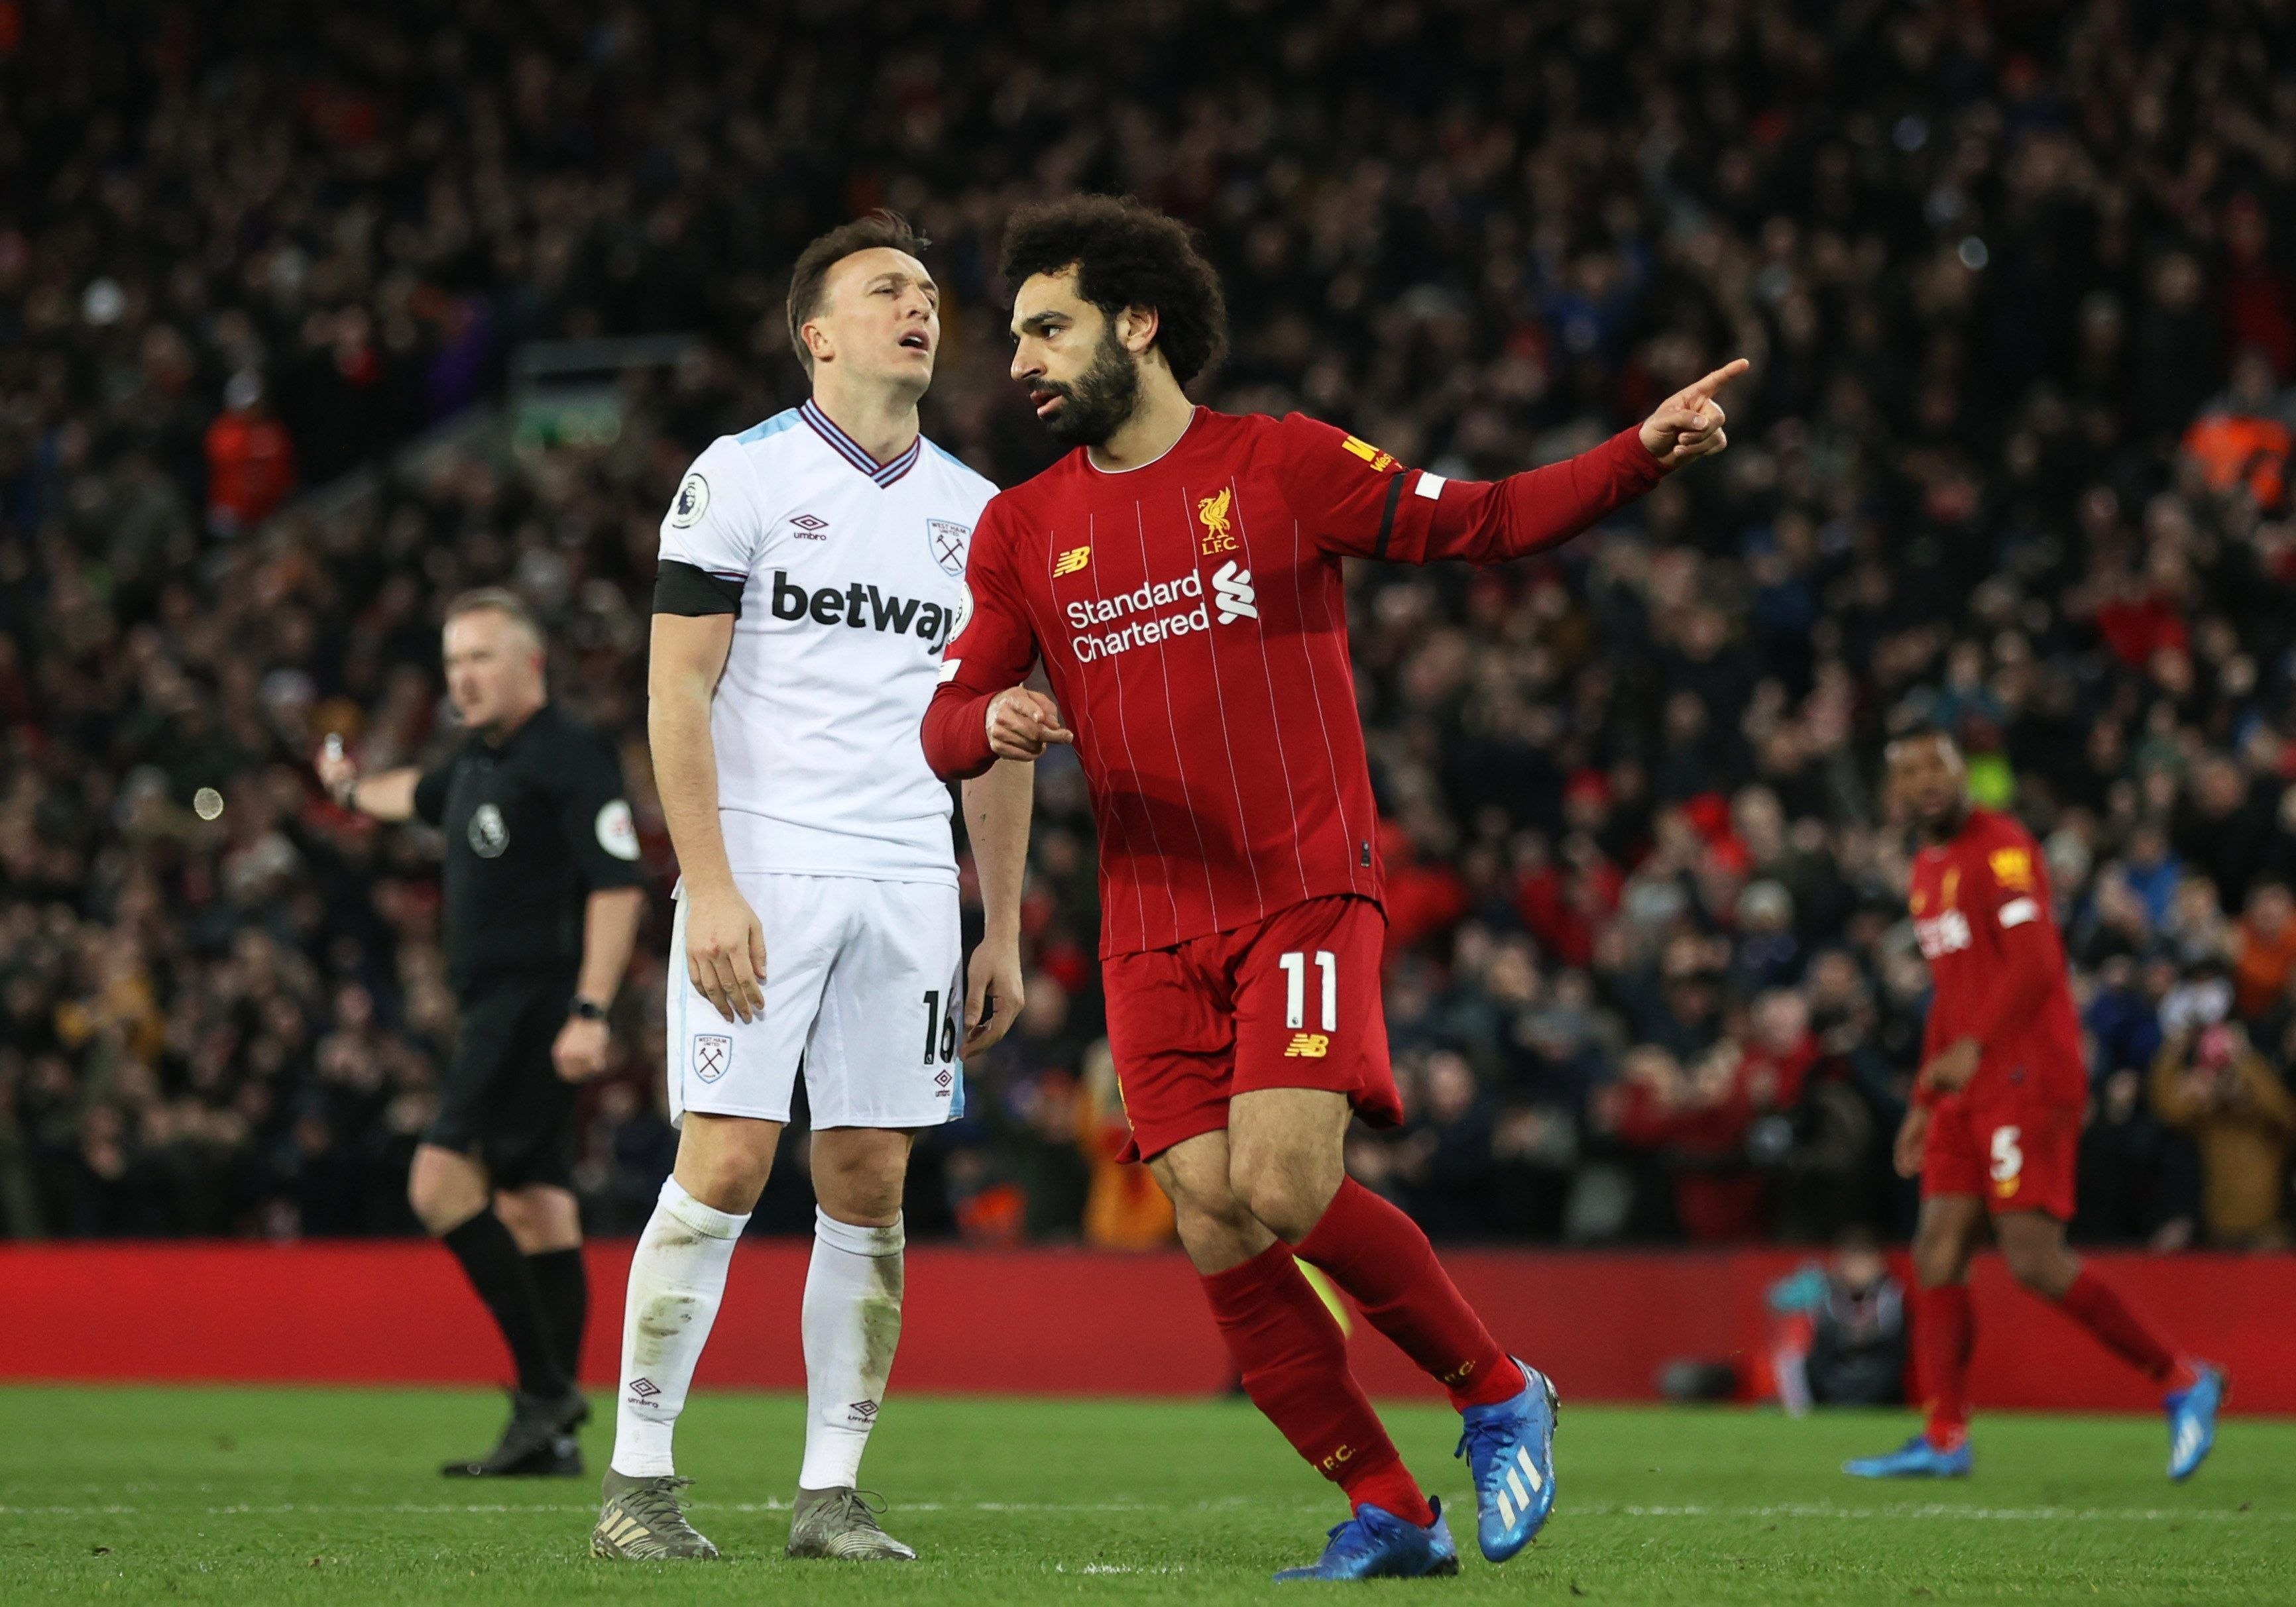 Watford Vs Liverpool Live Stream Tv Channel Kick Off Time And Team News For Premier League Clash Football Soccer Sport In 2020 Liverpool Premier League Tv Channel